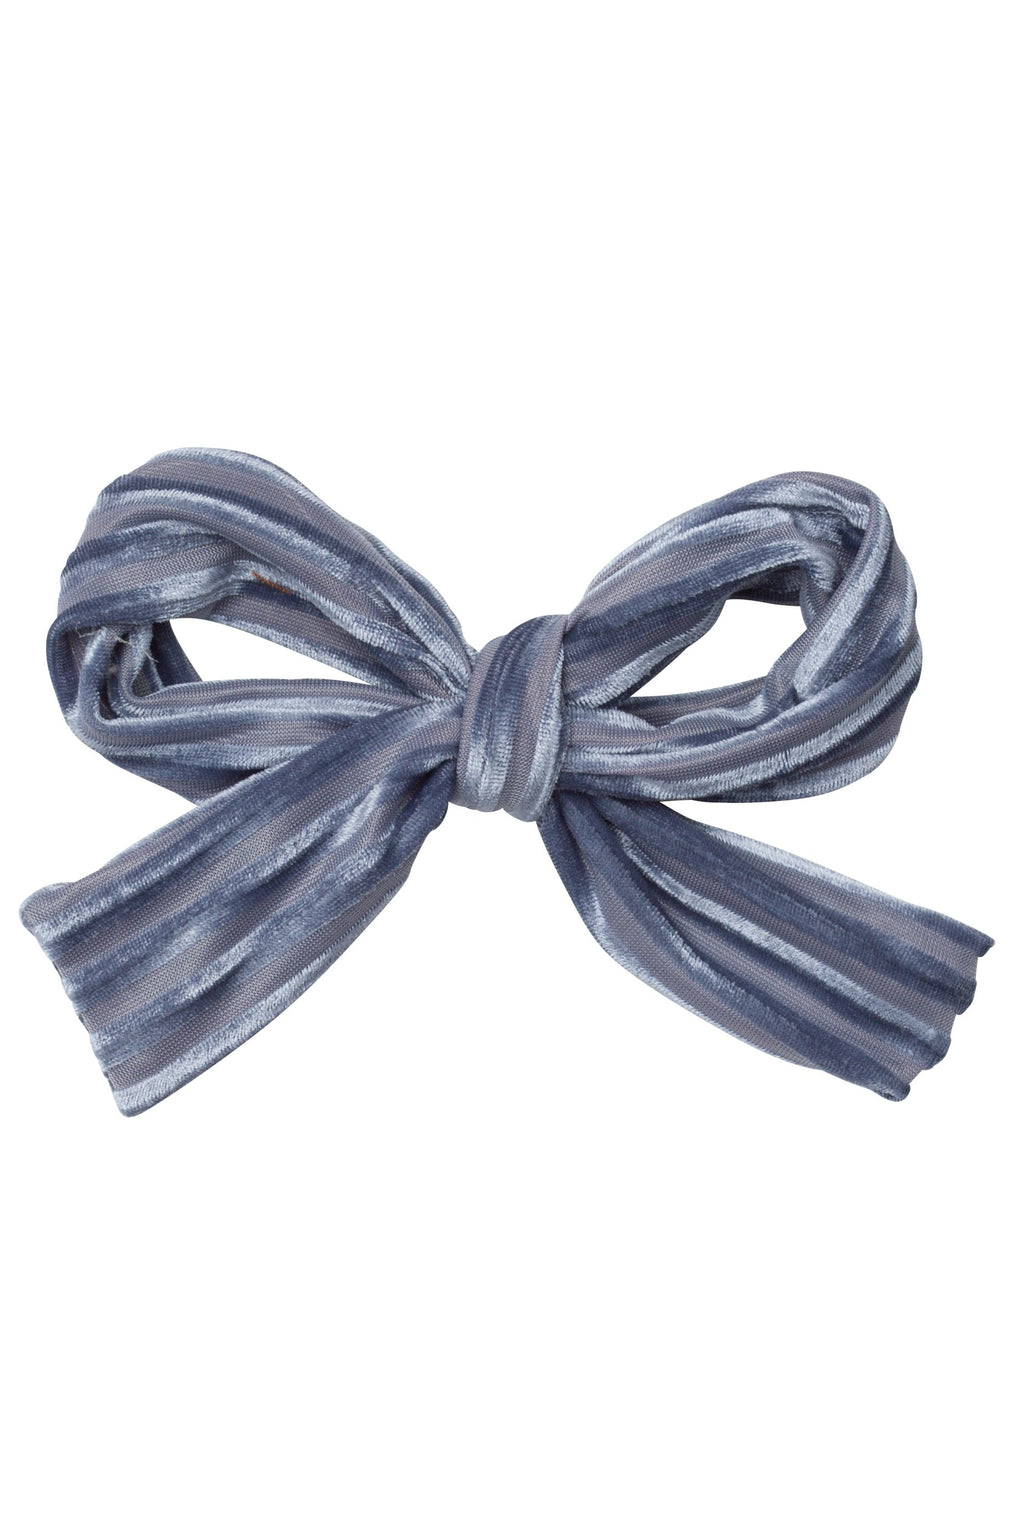 Party Bow Clip - Blue Velvet Stripe - PROJECT 6, modest fashion